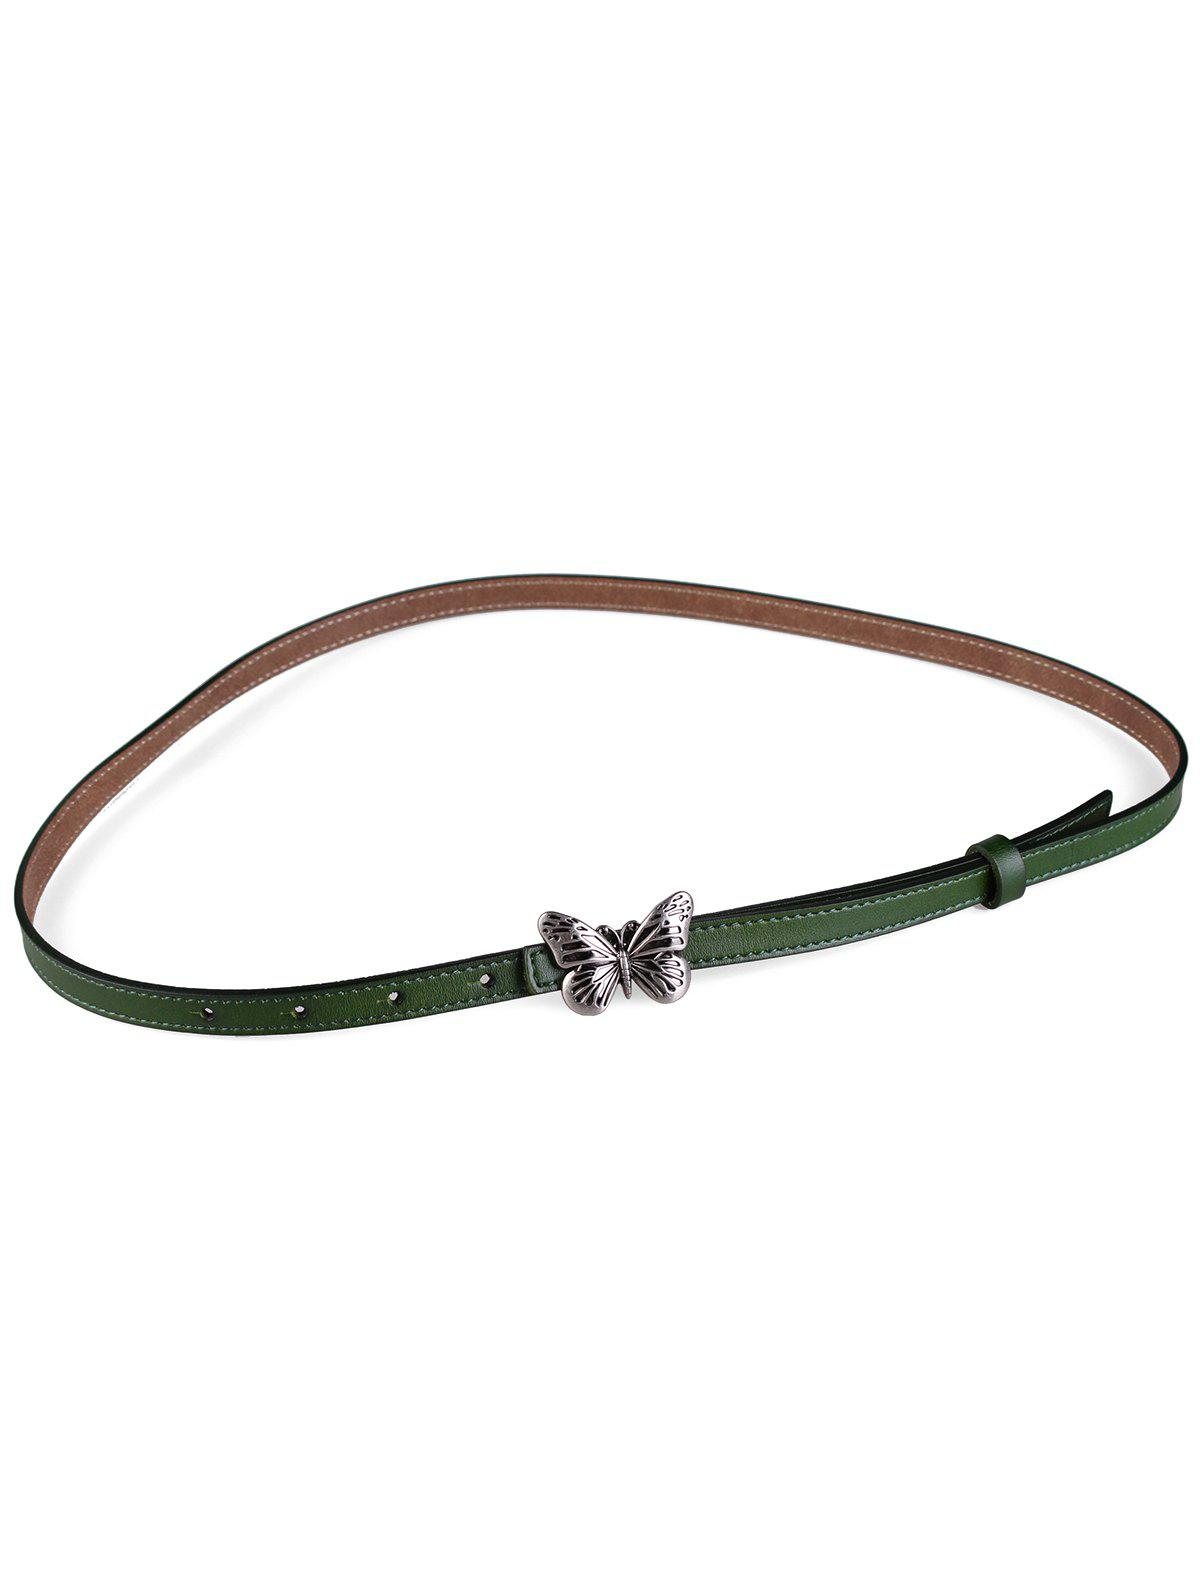 Metal Butterfly Buckle Artificial Leather Skinny Belt - MEDIUM SEA GREEN